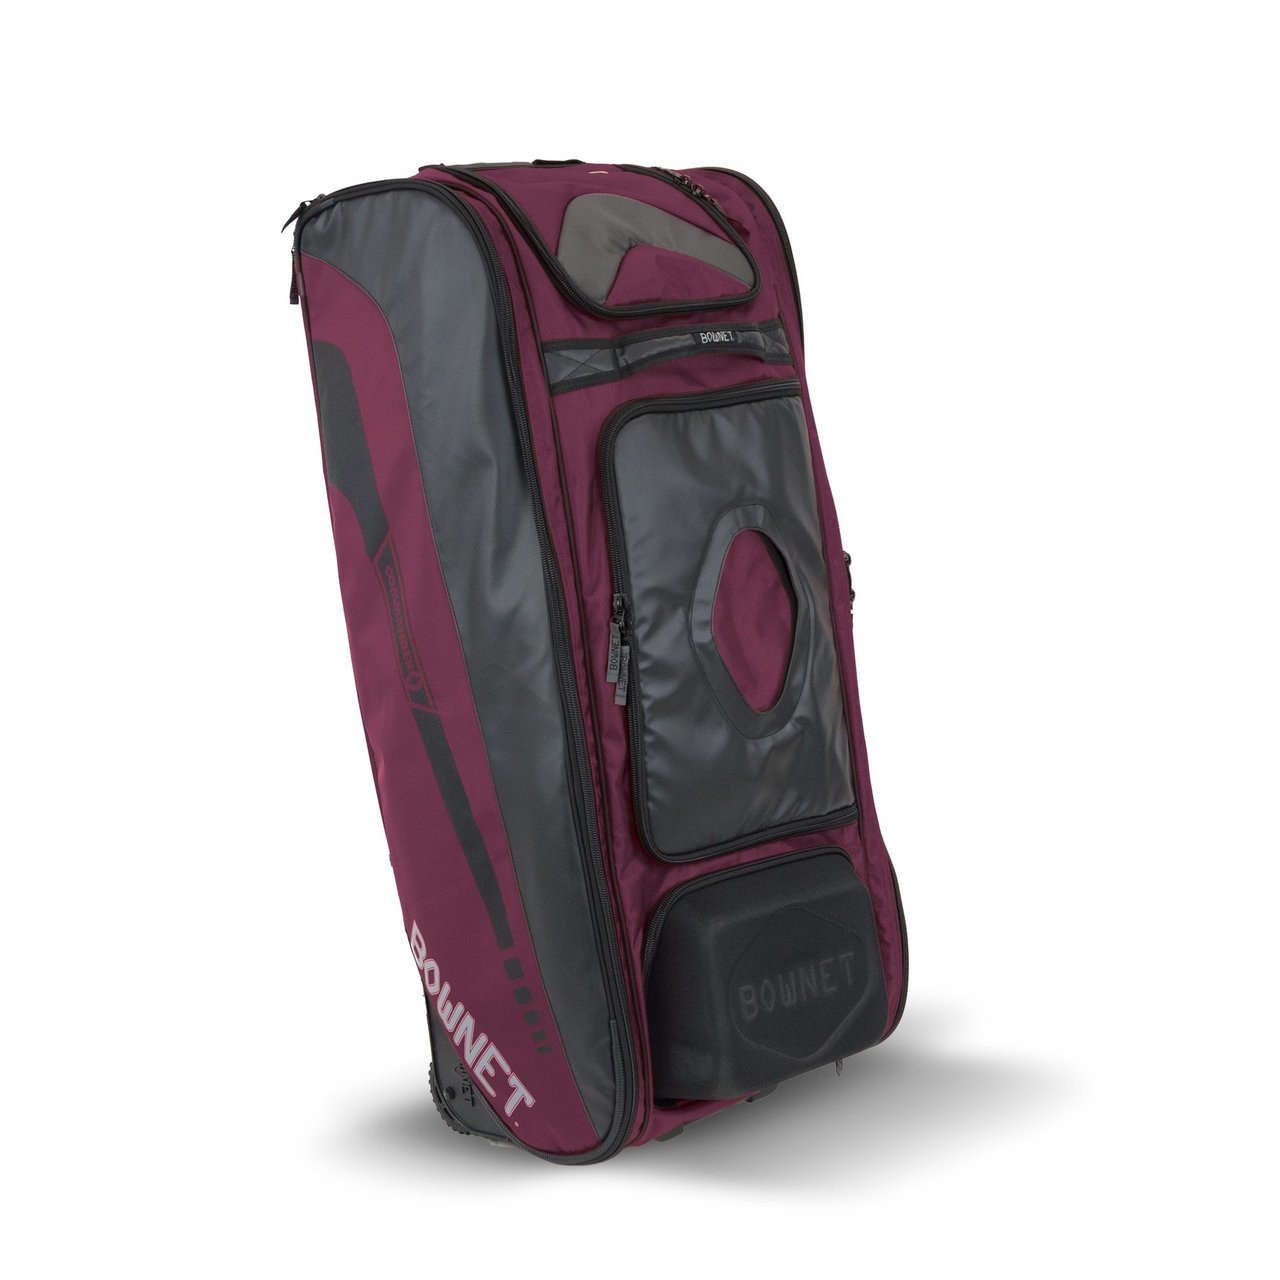 The Commander Catcher's Bag Maroon